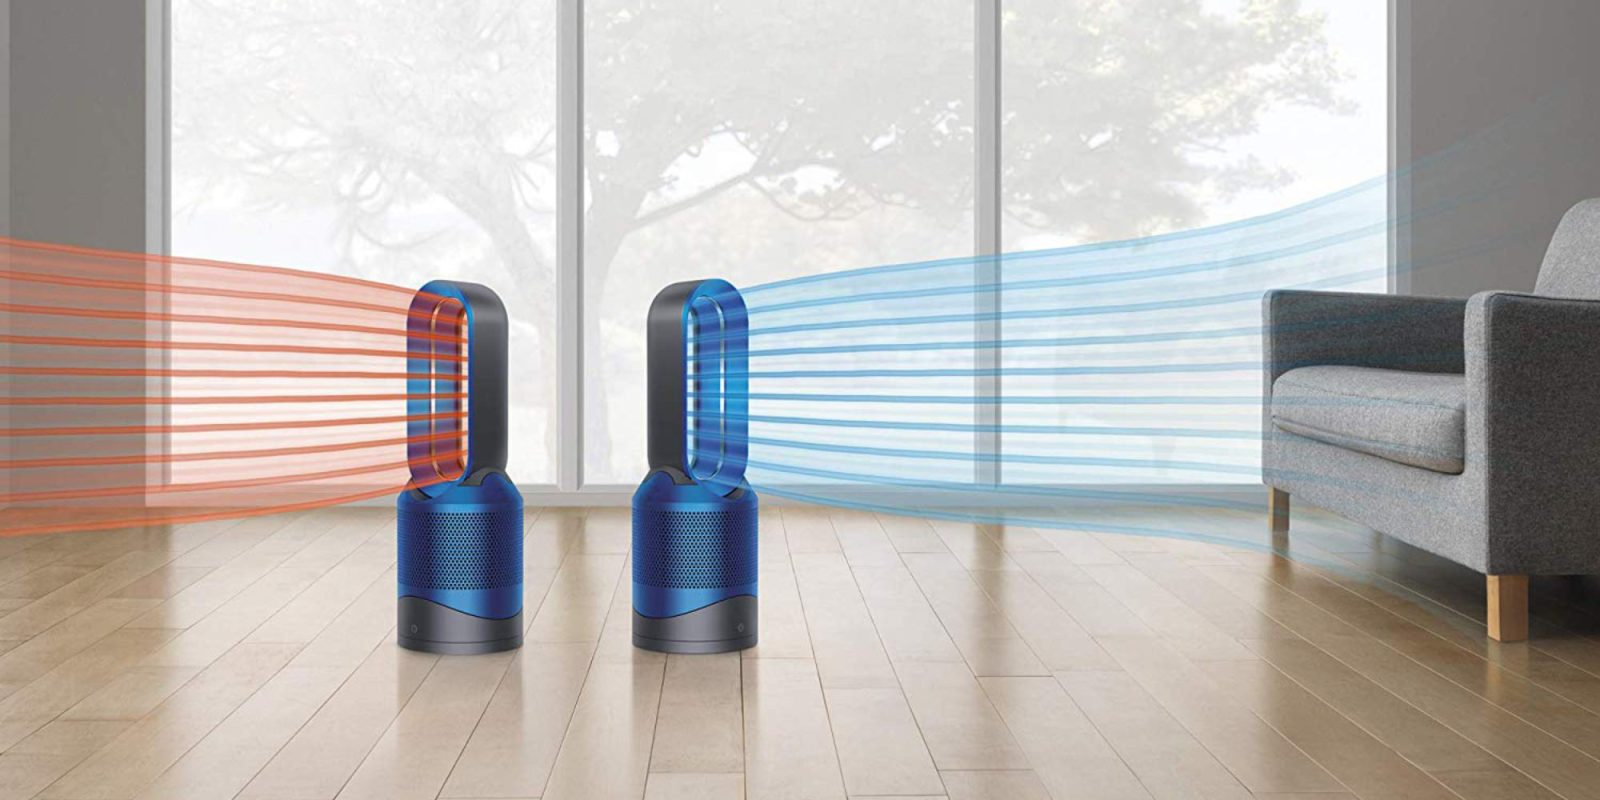 Dyson's Siri-compatible Pure Hot + Cool AiO is $230 (Refurb, Orig. $599), more